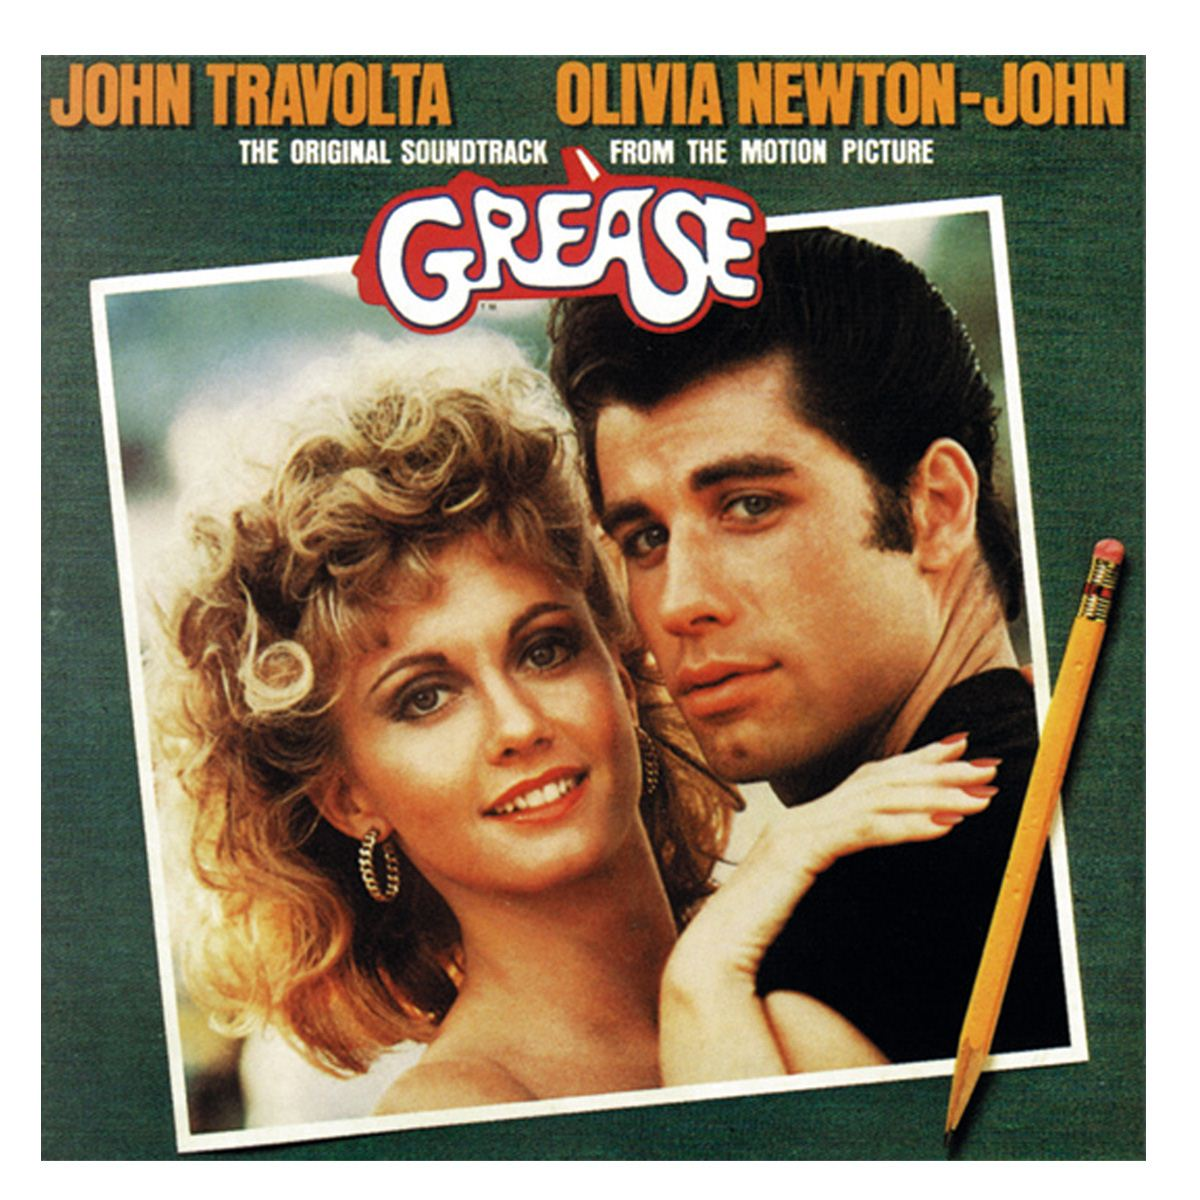 CD Grease (Limited Edition)